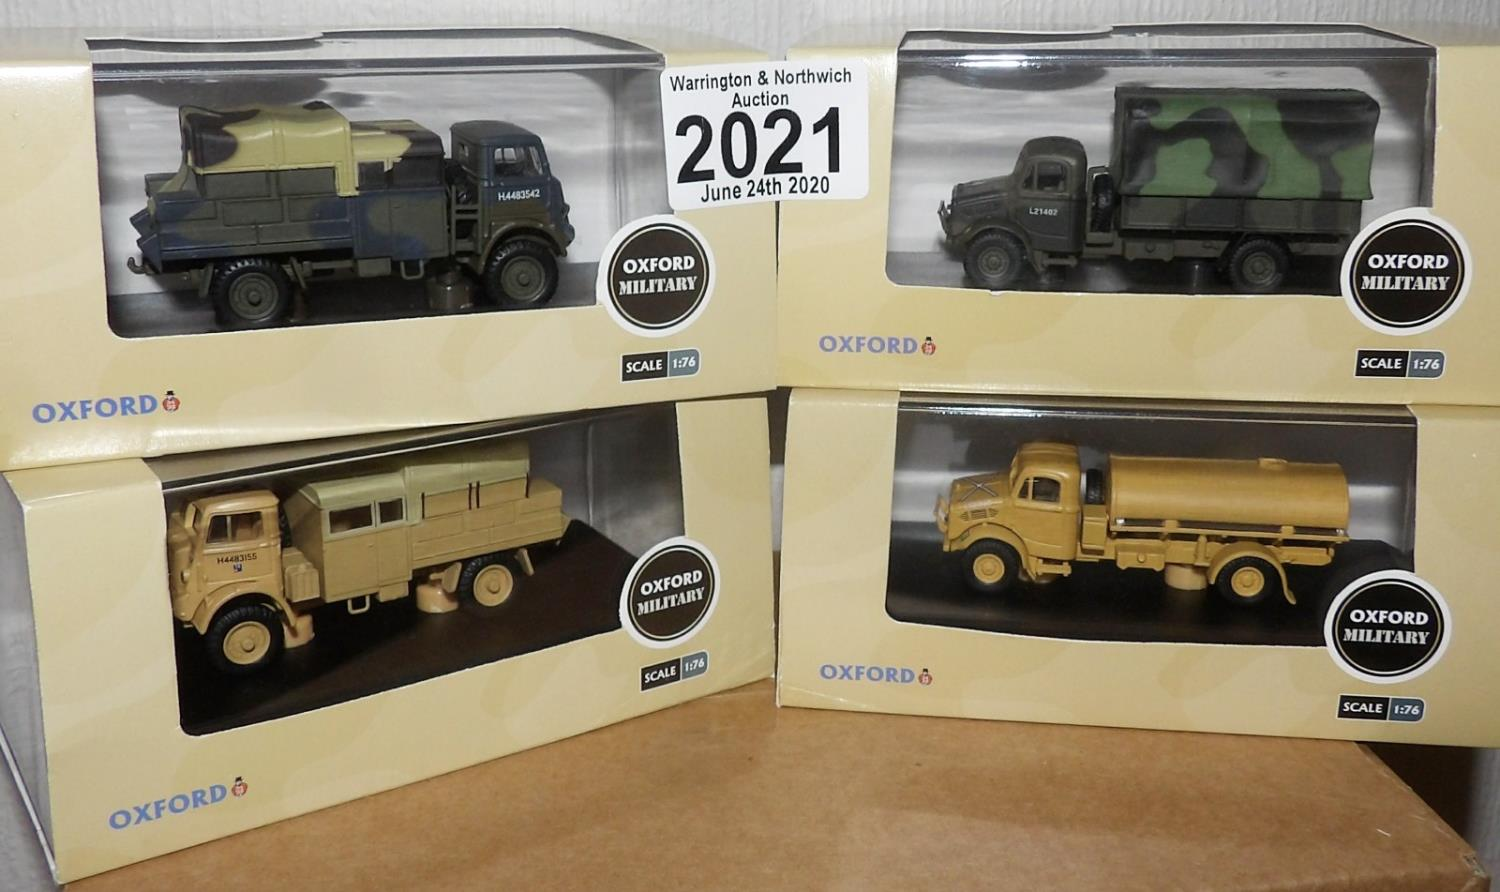 Lot 2021 - Oxford 1.76 Scale x 4 Mixed Military Vehicles. P&P Group 2 (£18+VAT for the first lot and £2+VAT for